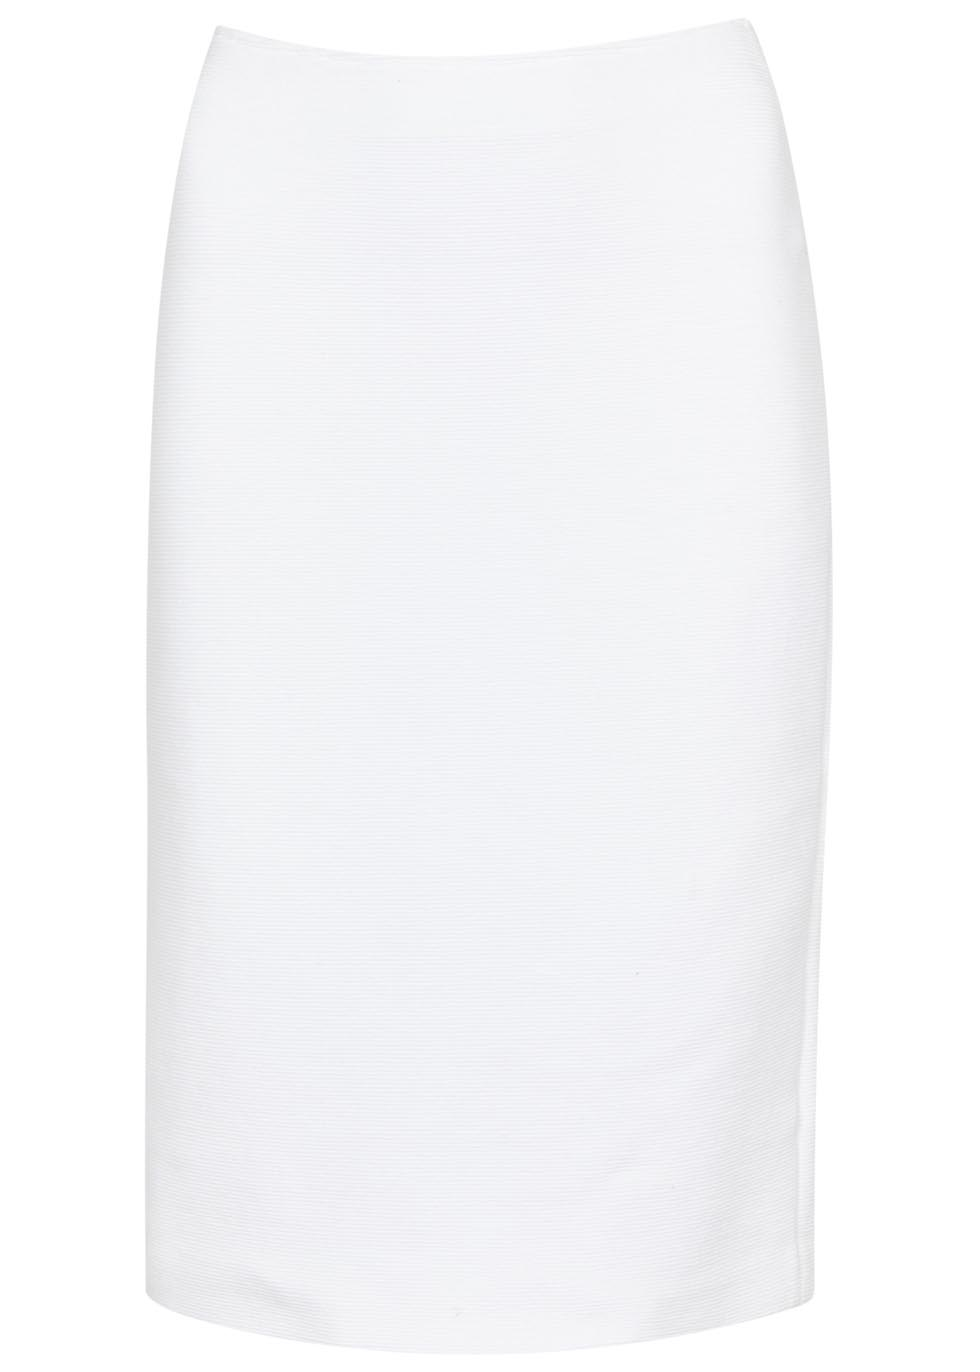 armani white ribbed stretch cotton pencil skirt in white